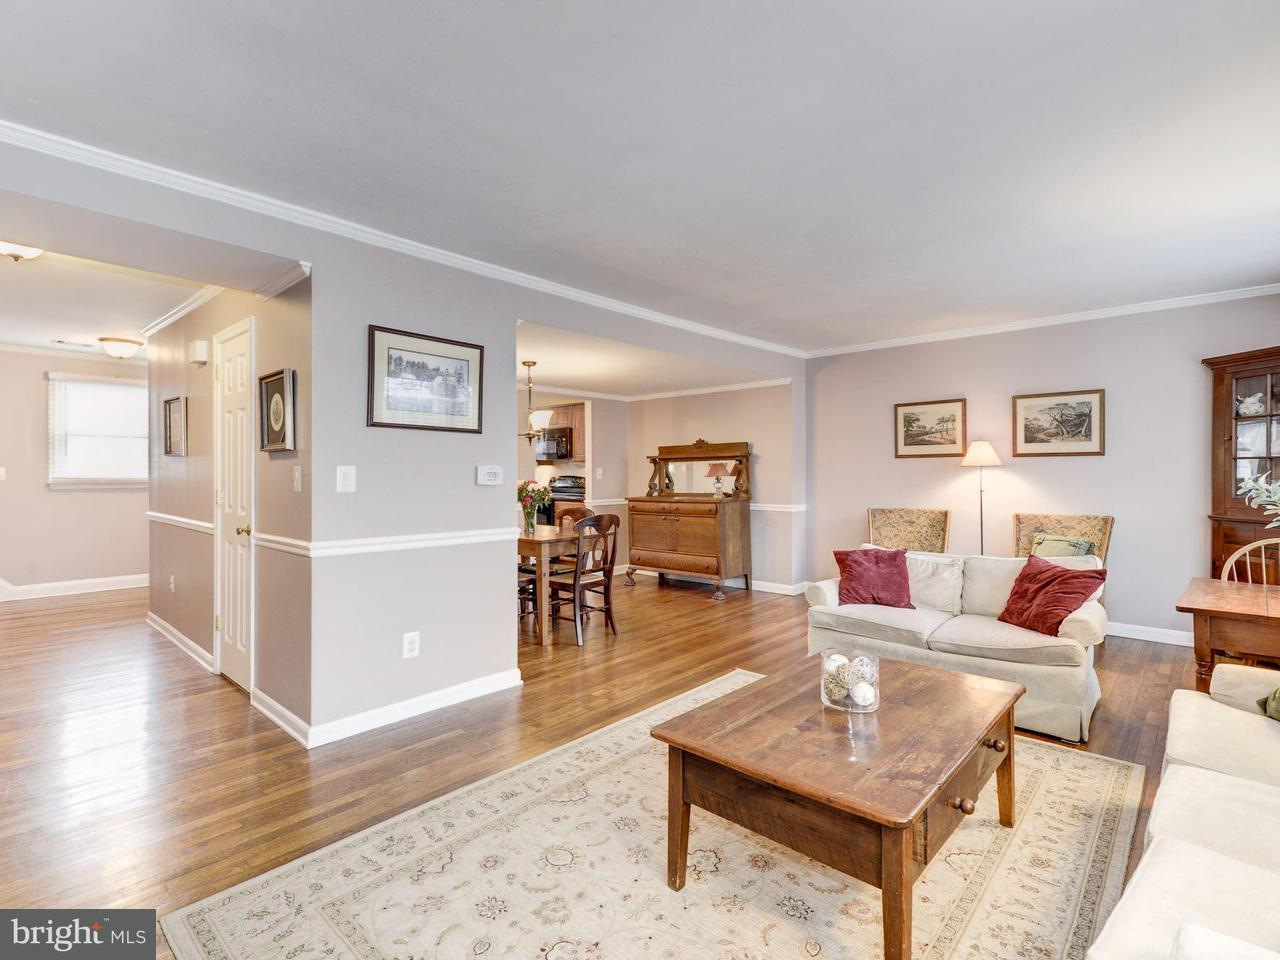 Additional photo for property listing at 3881 Chain Bridge Road 3881 Chain Bridge Road Fairfax, Virginia 22030 Stati Uniti